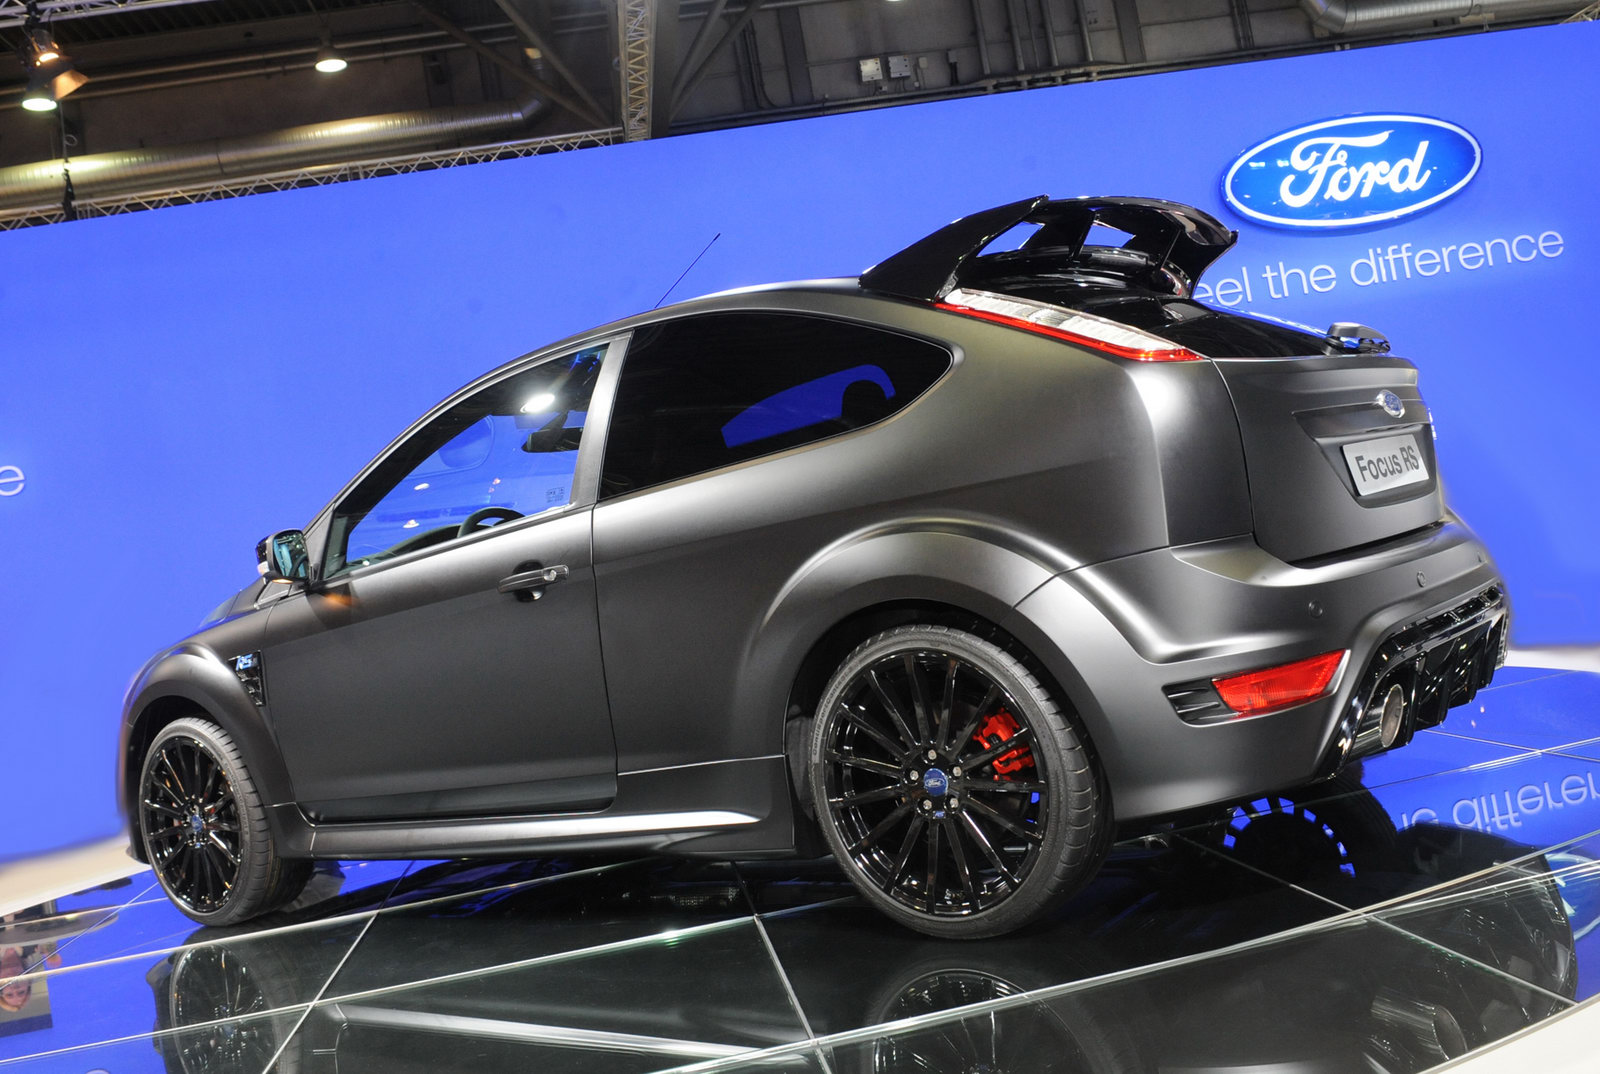 carscoop ami live ford 39 s kitted out focus rs500 makes its public debut. Black Bedroom Furniture Sets. Home Design Ideas